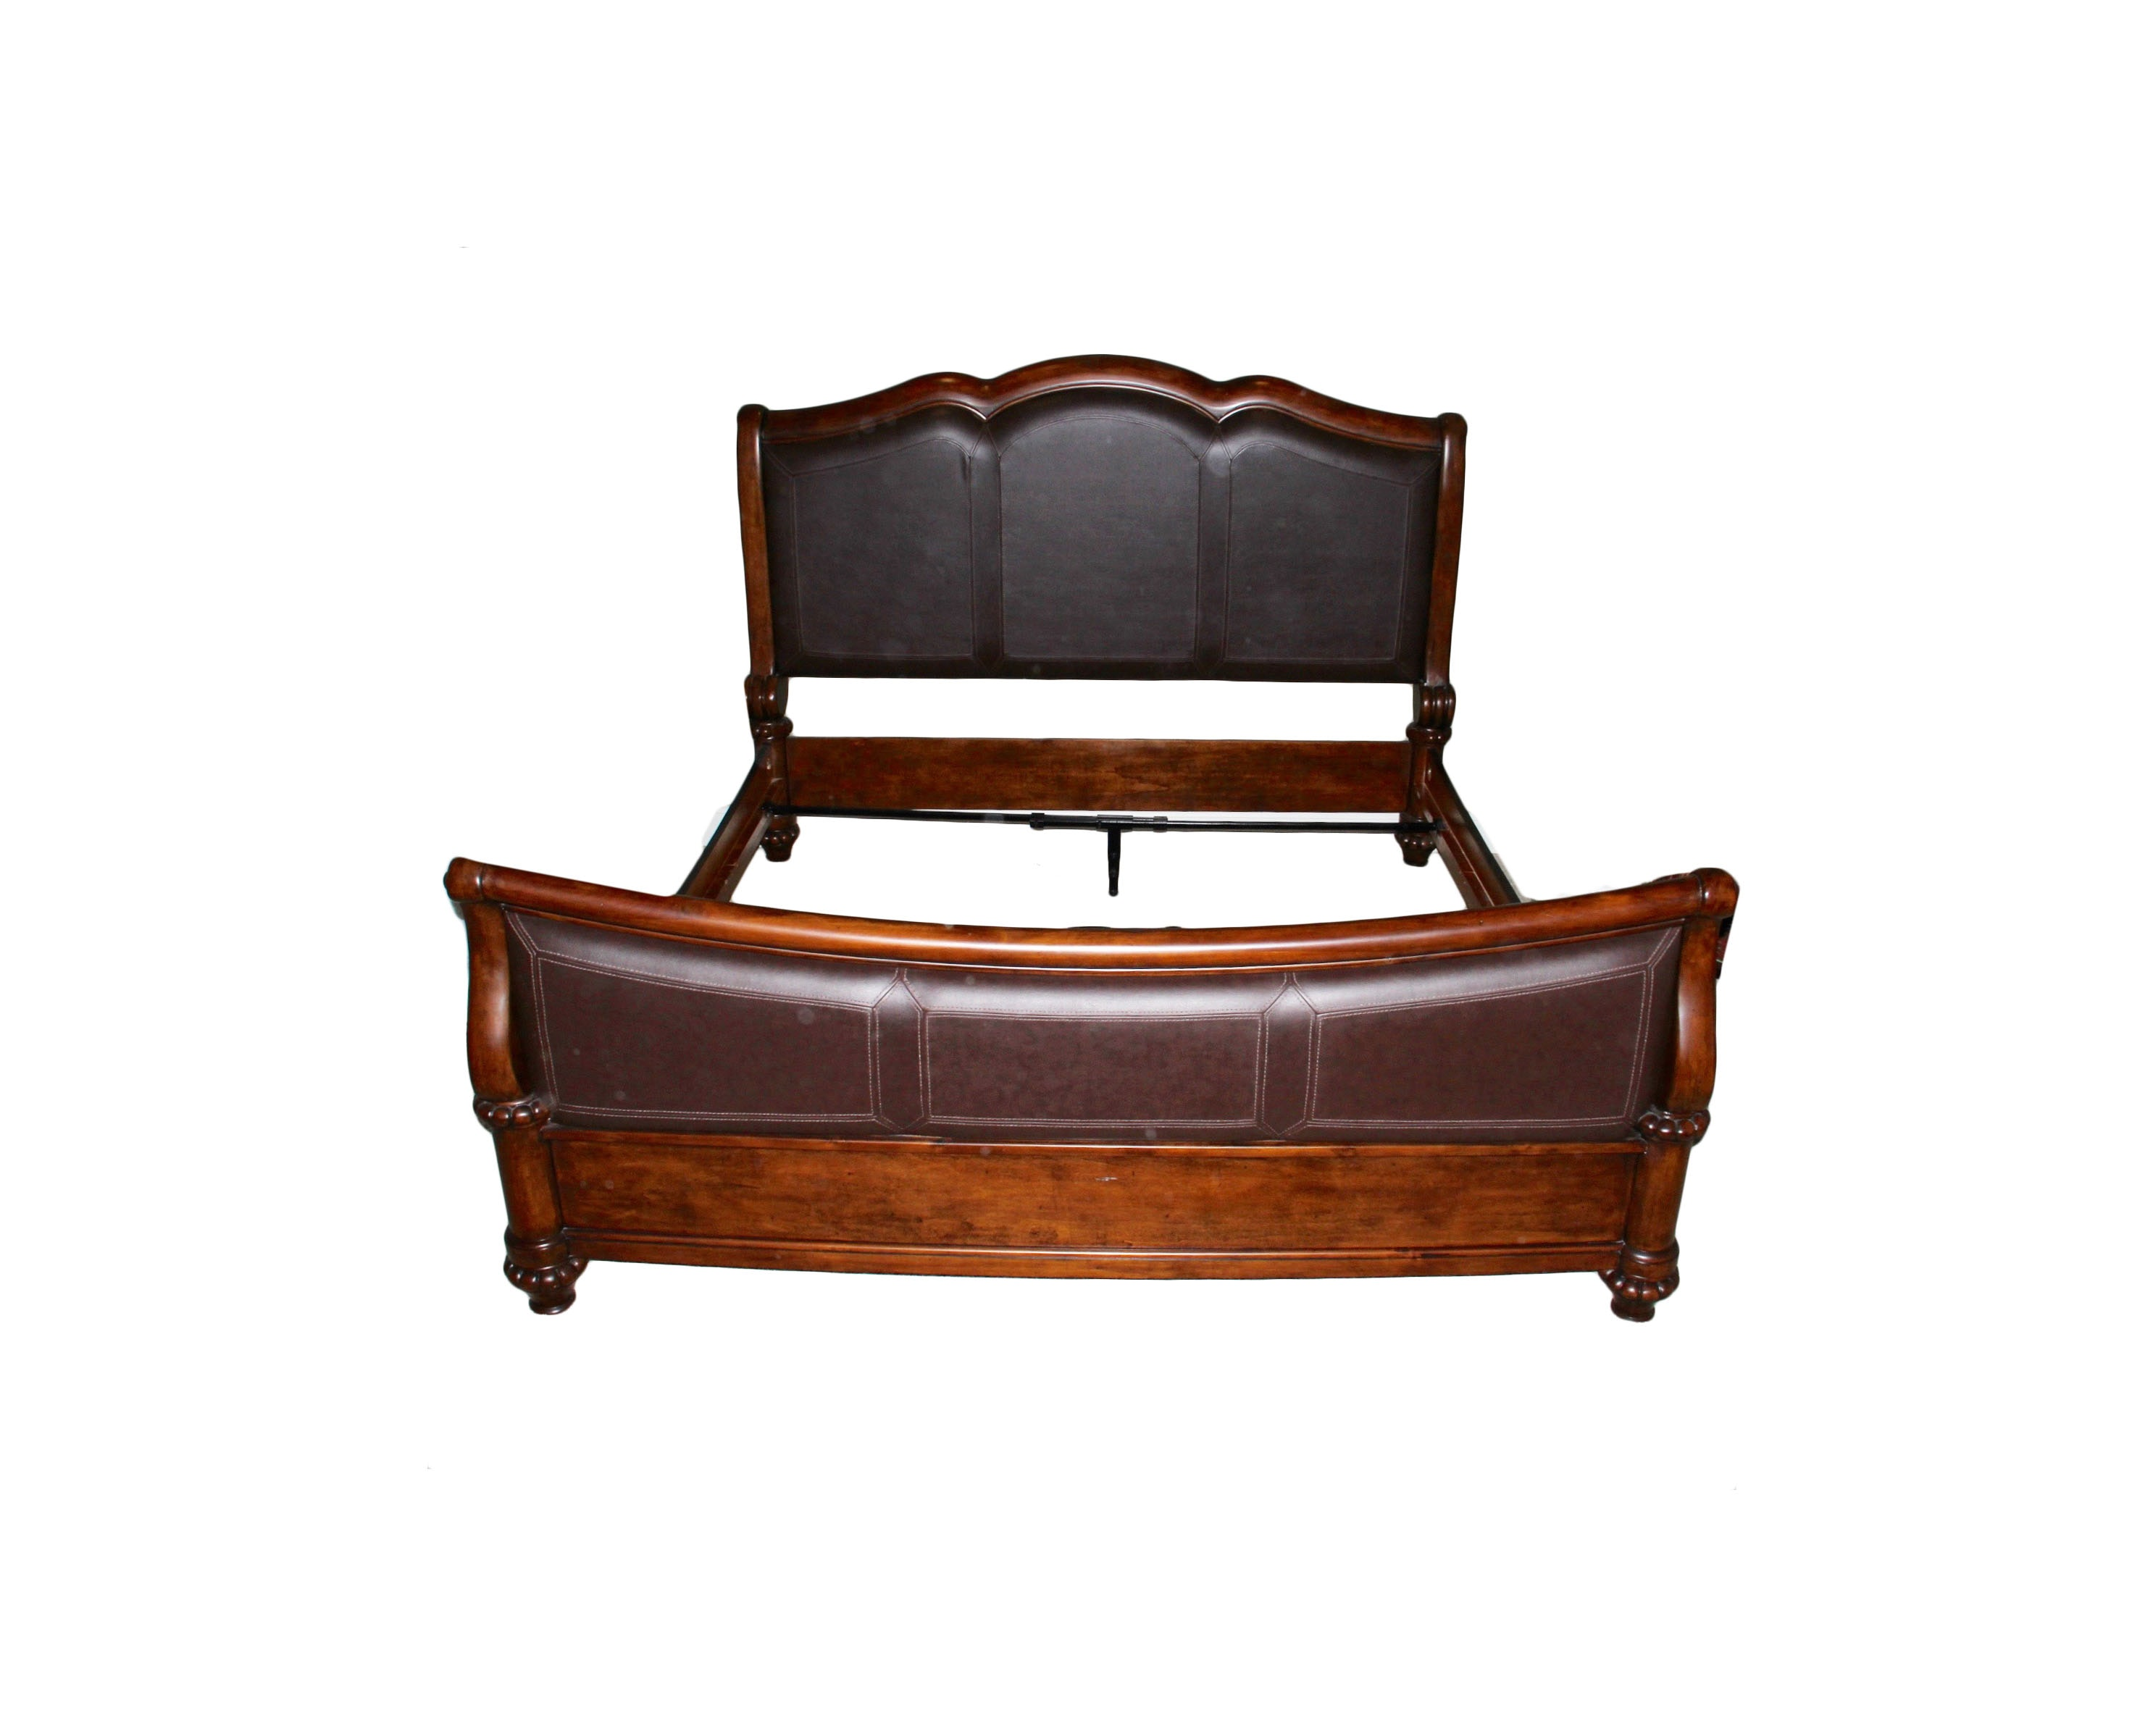 Mahogany and Leather King Size Bed Frame